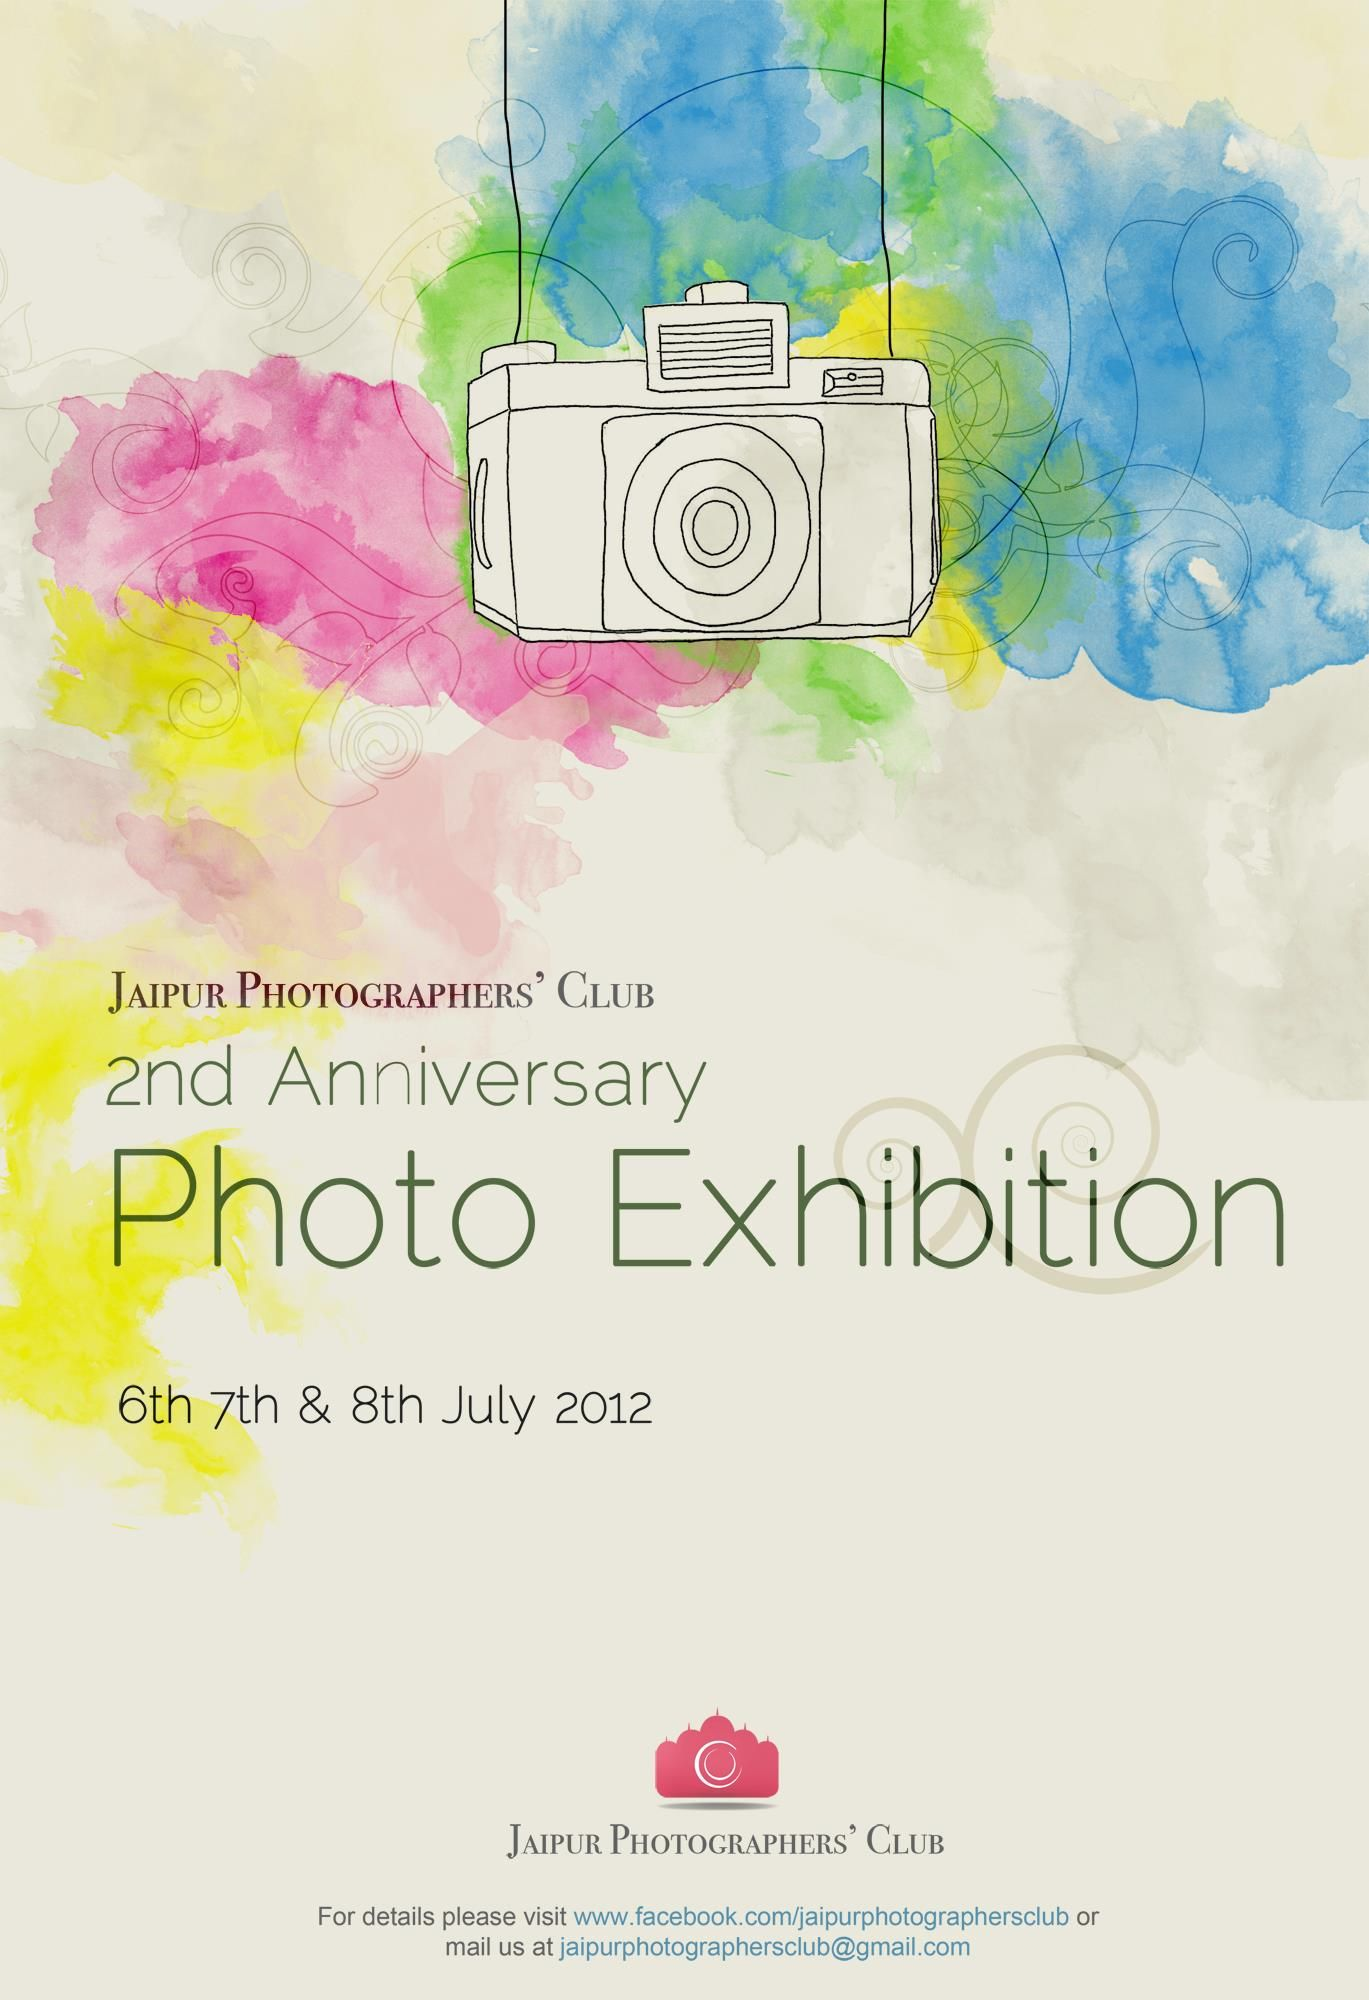 Photography Exhibition Poster Photography Exhibition Exhibition Poster Poster Photography